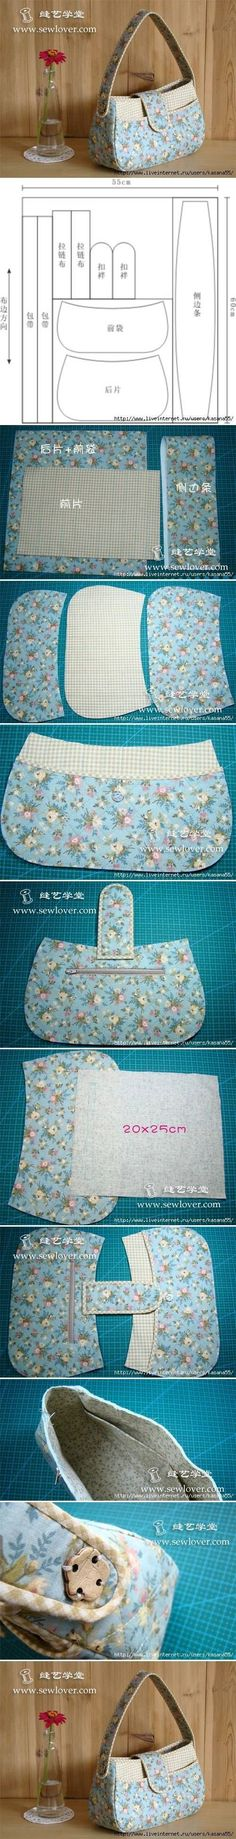 59 Ideas diy fashion bags tuto sac for 2020 Patchwork Bags, Quilted Bag, Patchwork Fabric, Purse Patterns, Sewing Patterns, Bag Quilt, Diy Sac, Diy Purse, Purse Styles